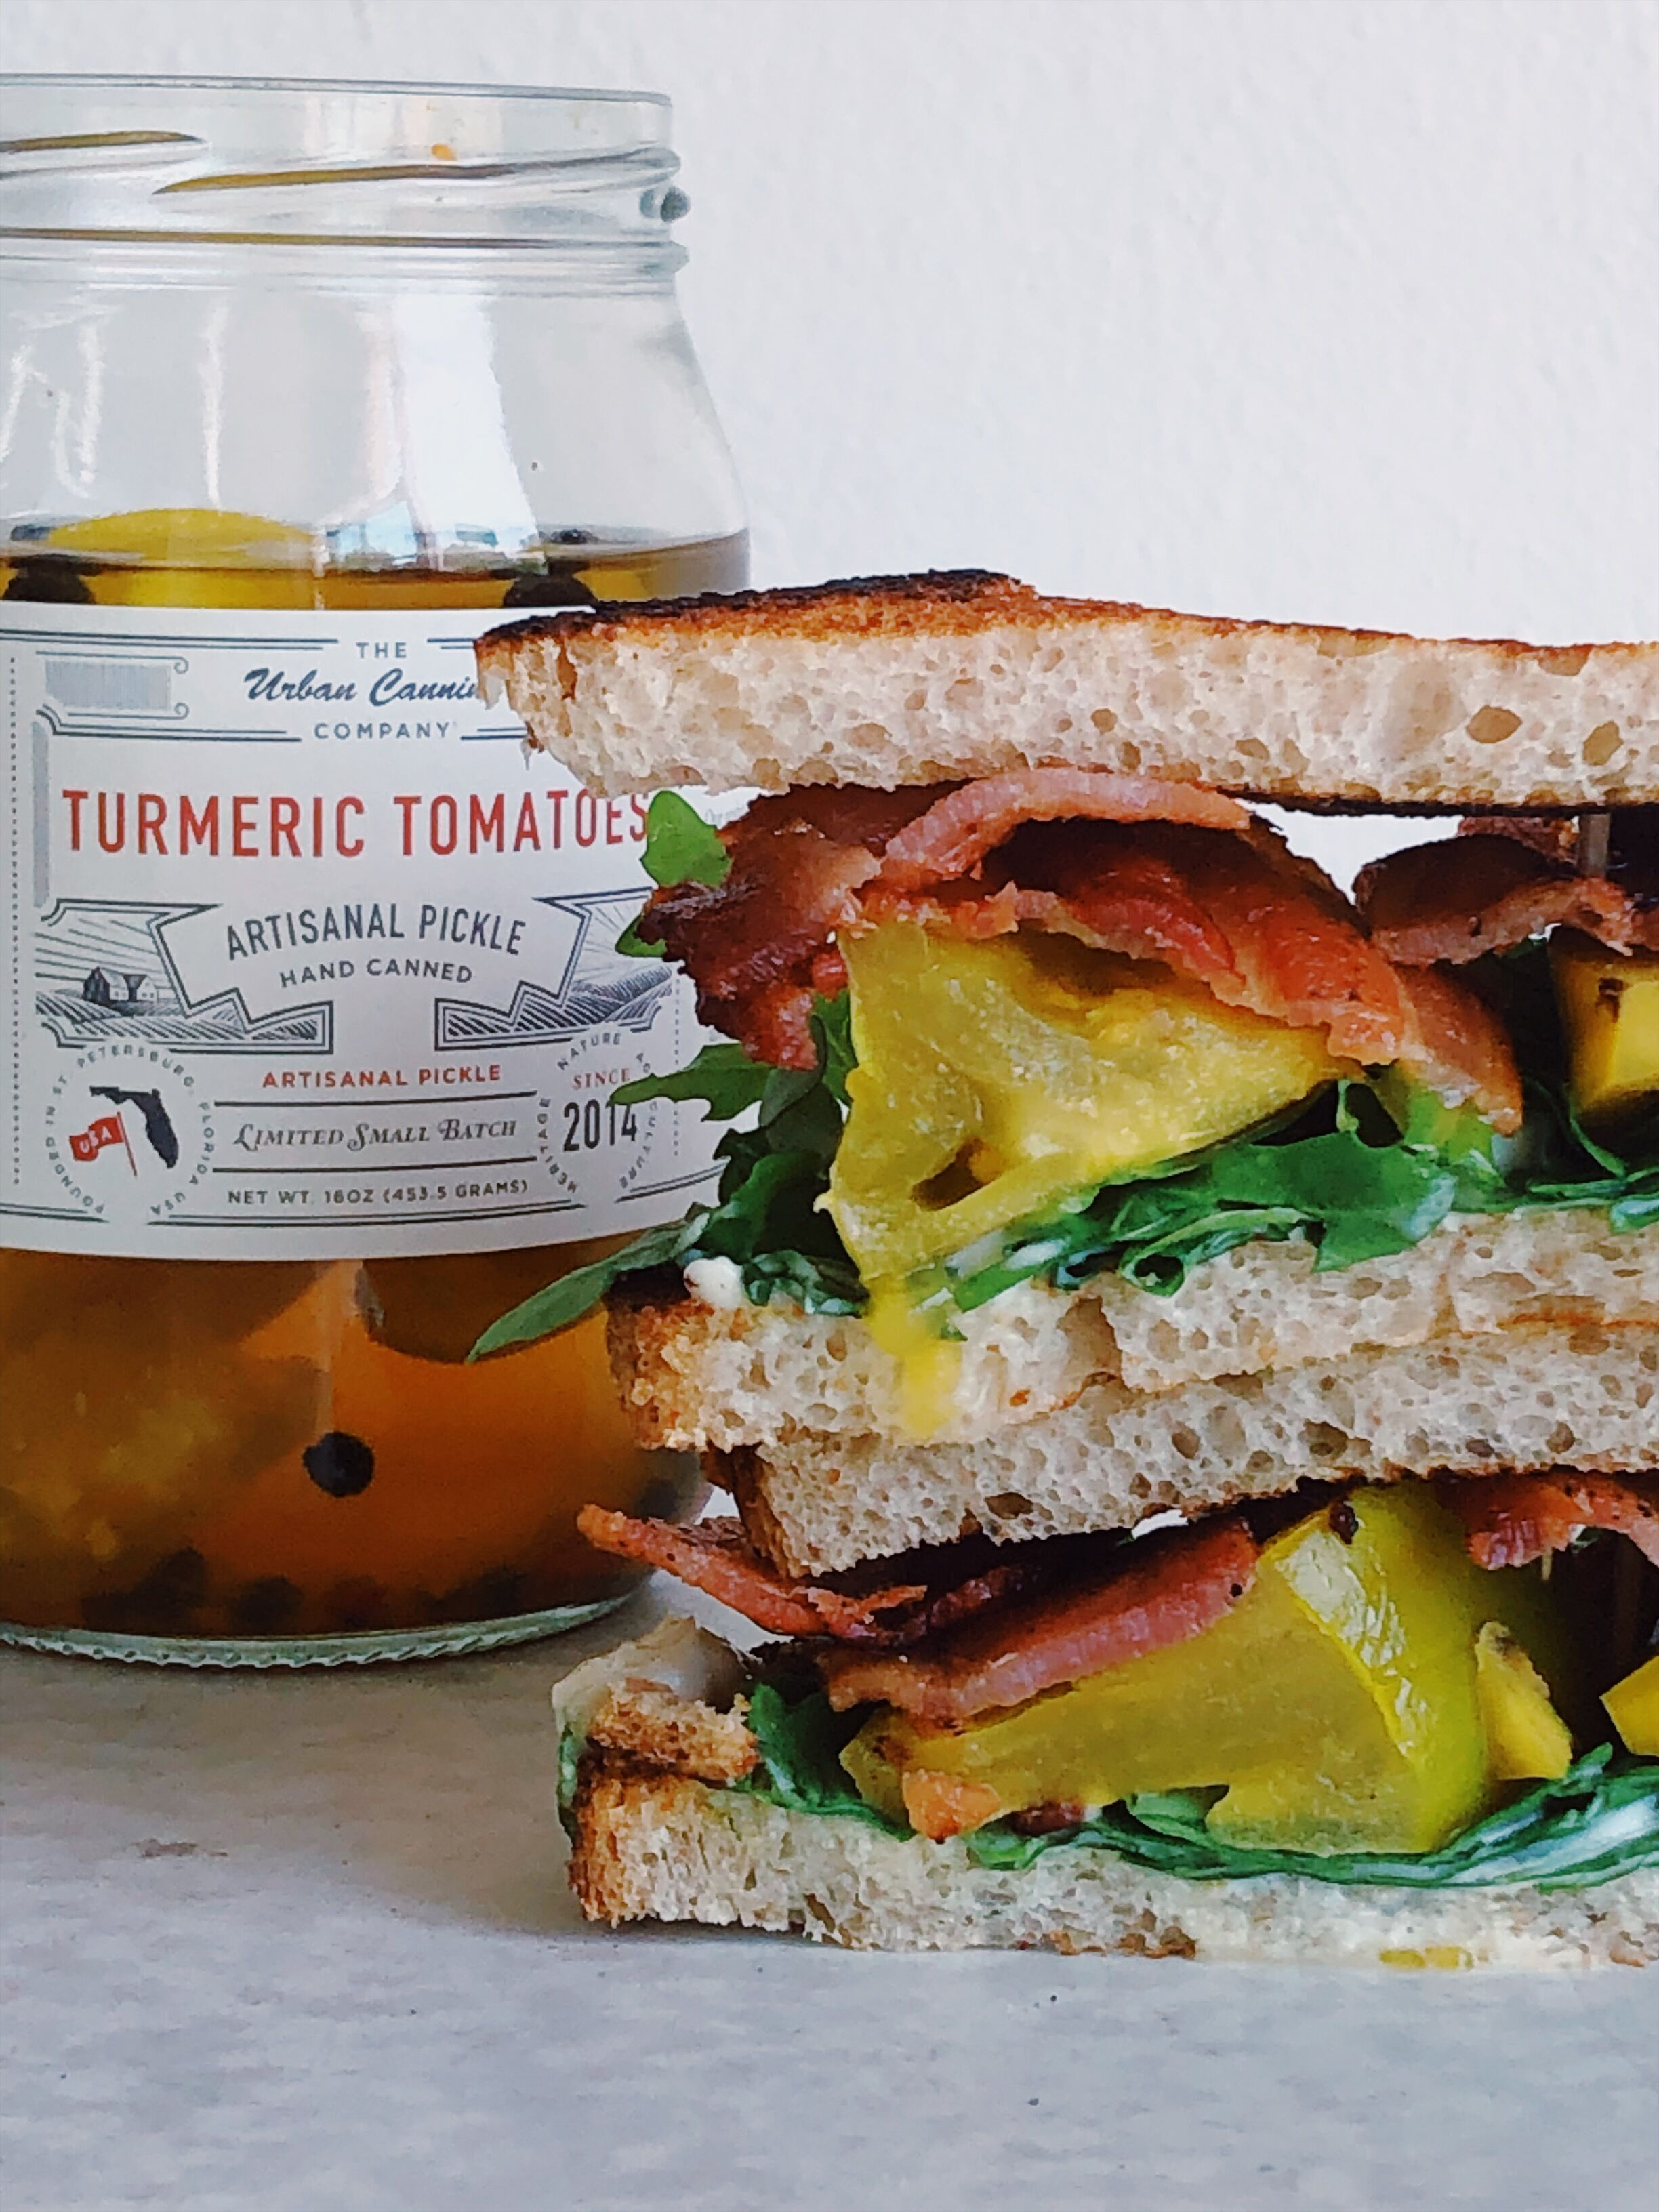 Turmeric Tomato BLT - Makes 1 sandwichIngredients:• sourdough bread• bacon fried to your liking• Turmeric Tomatoes• arugula• mayo•butter for toasting your bread (optional)1. Fry up your bacon in a cast iron pan and save the grease for toasting your bread.2. Toast sourdough bread in bacon grease, or with butter.3. Layer on mayo, arugula, Turmeric Tomatoes and bacon.4. Cut in half and enjoy!